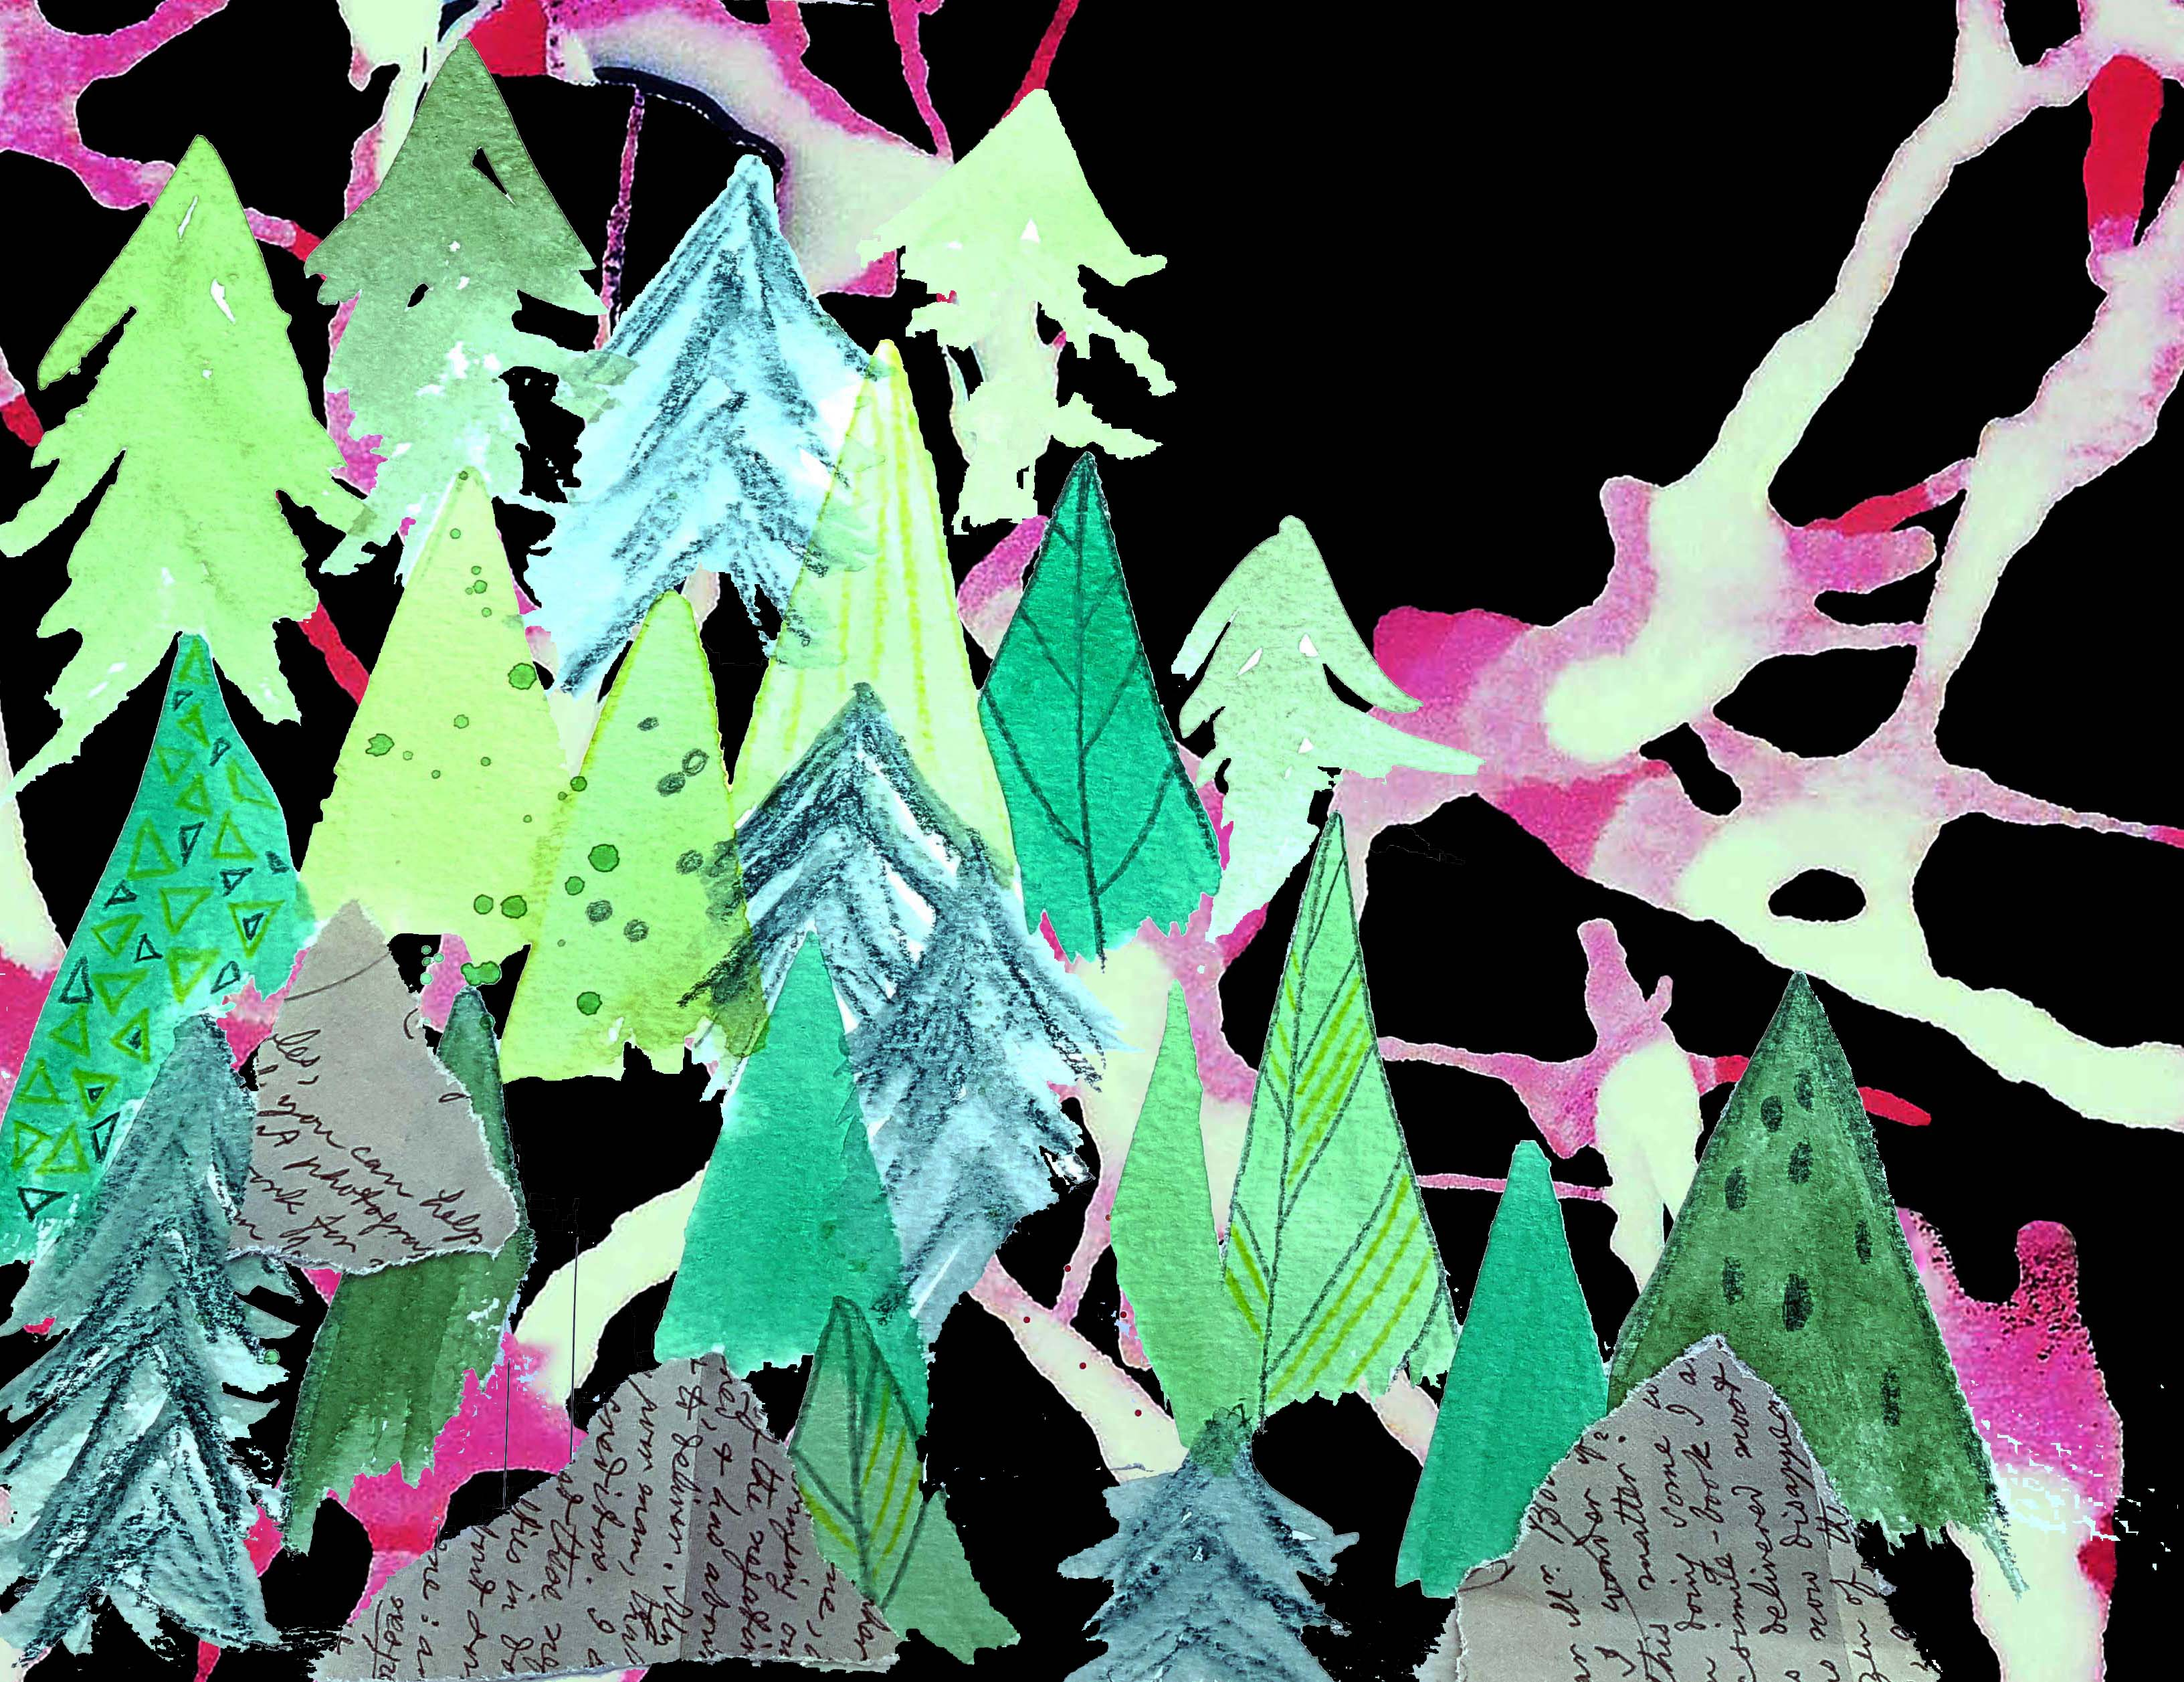 Psychedelic Forest: a digital collage